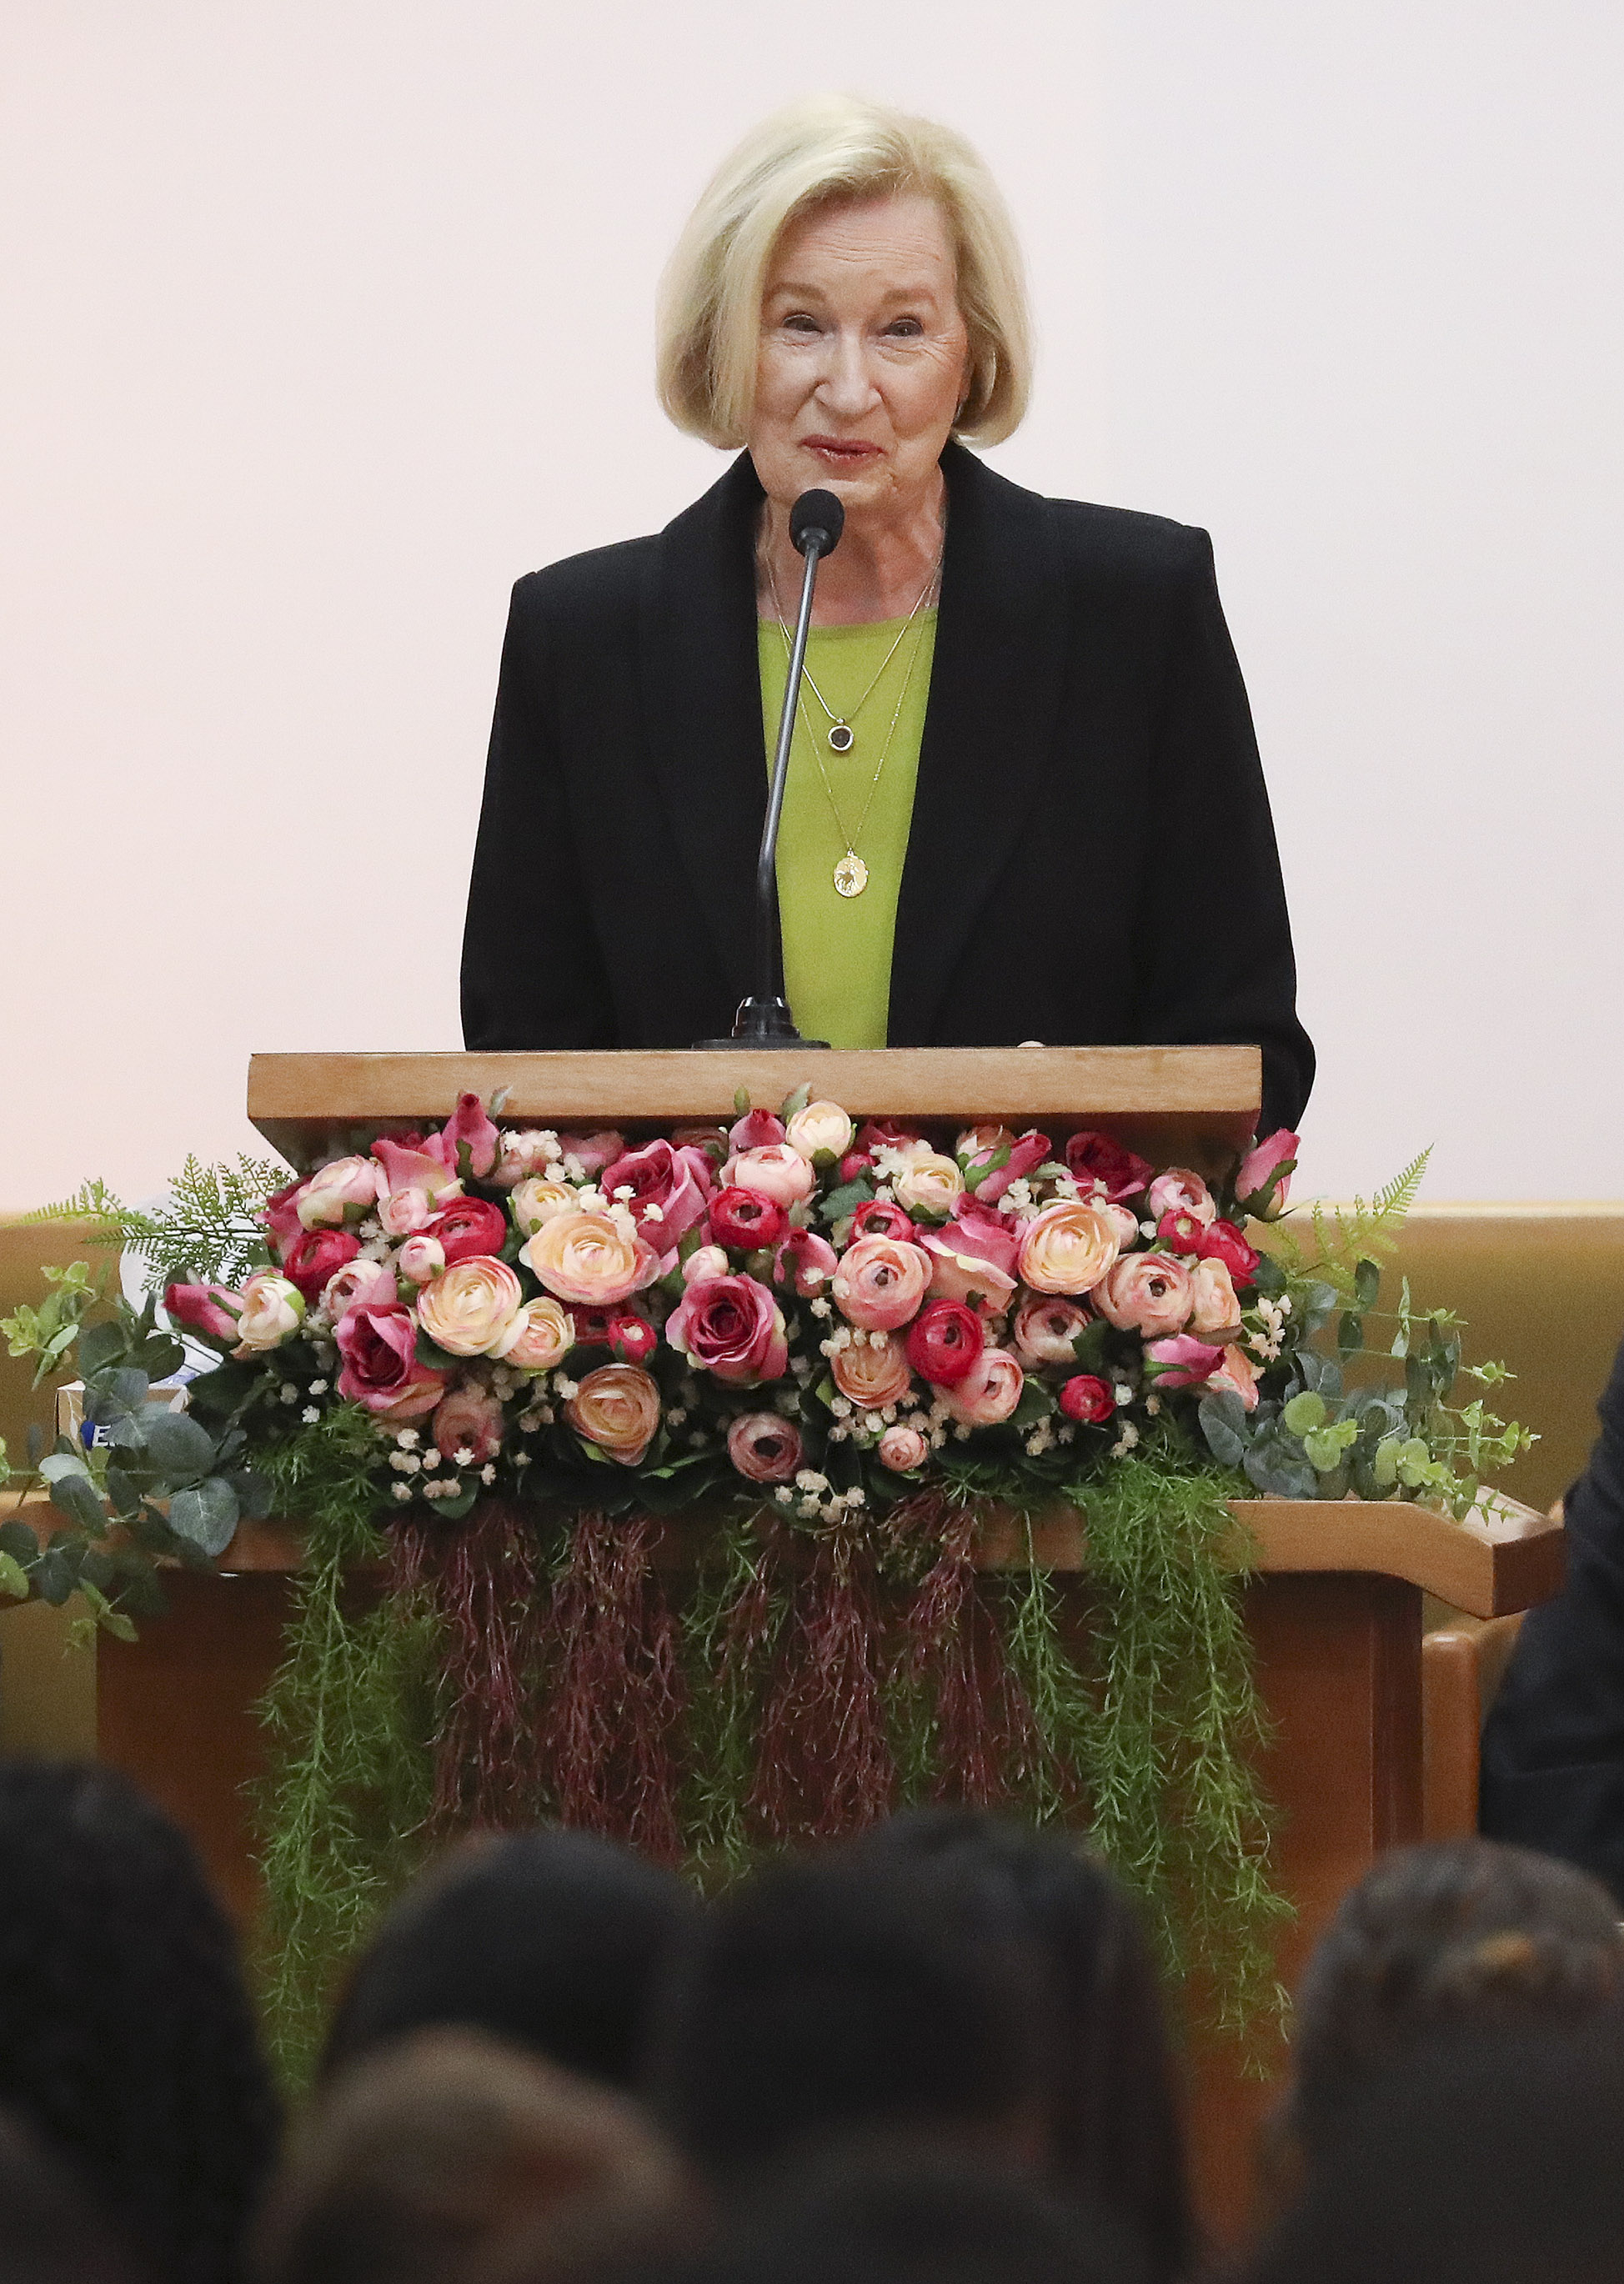 Sister Mary Cook speaks during a Brazil Brasilia Mission meeting in Brasilia, Brazil, on Friday, Aug. 30, 2019.